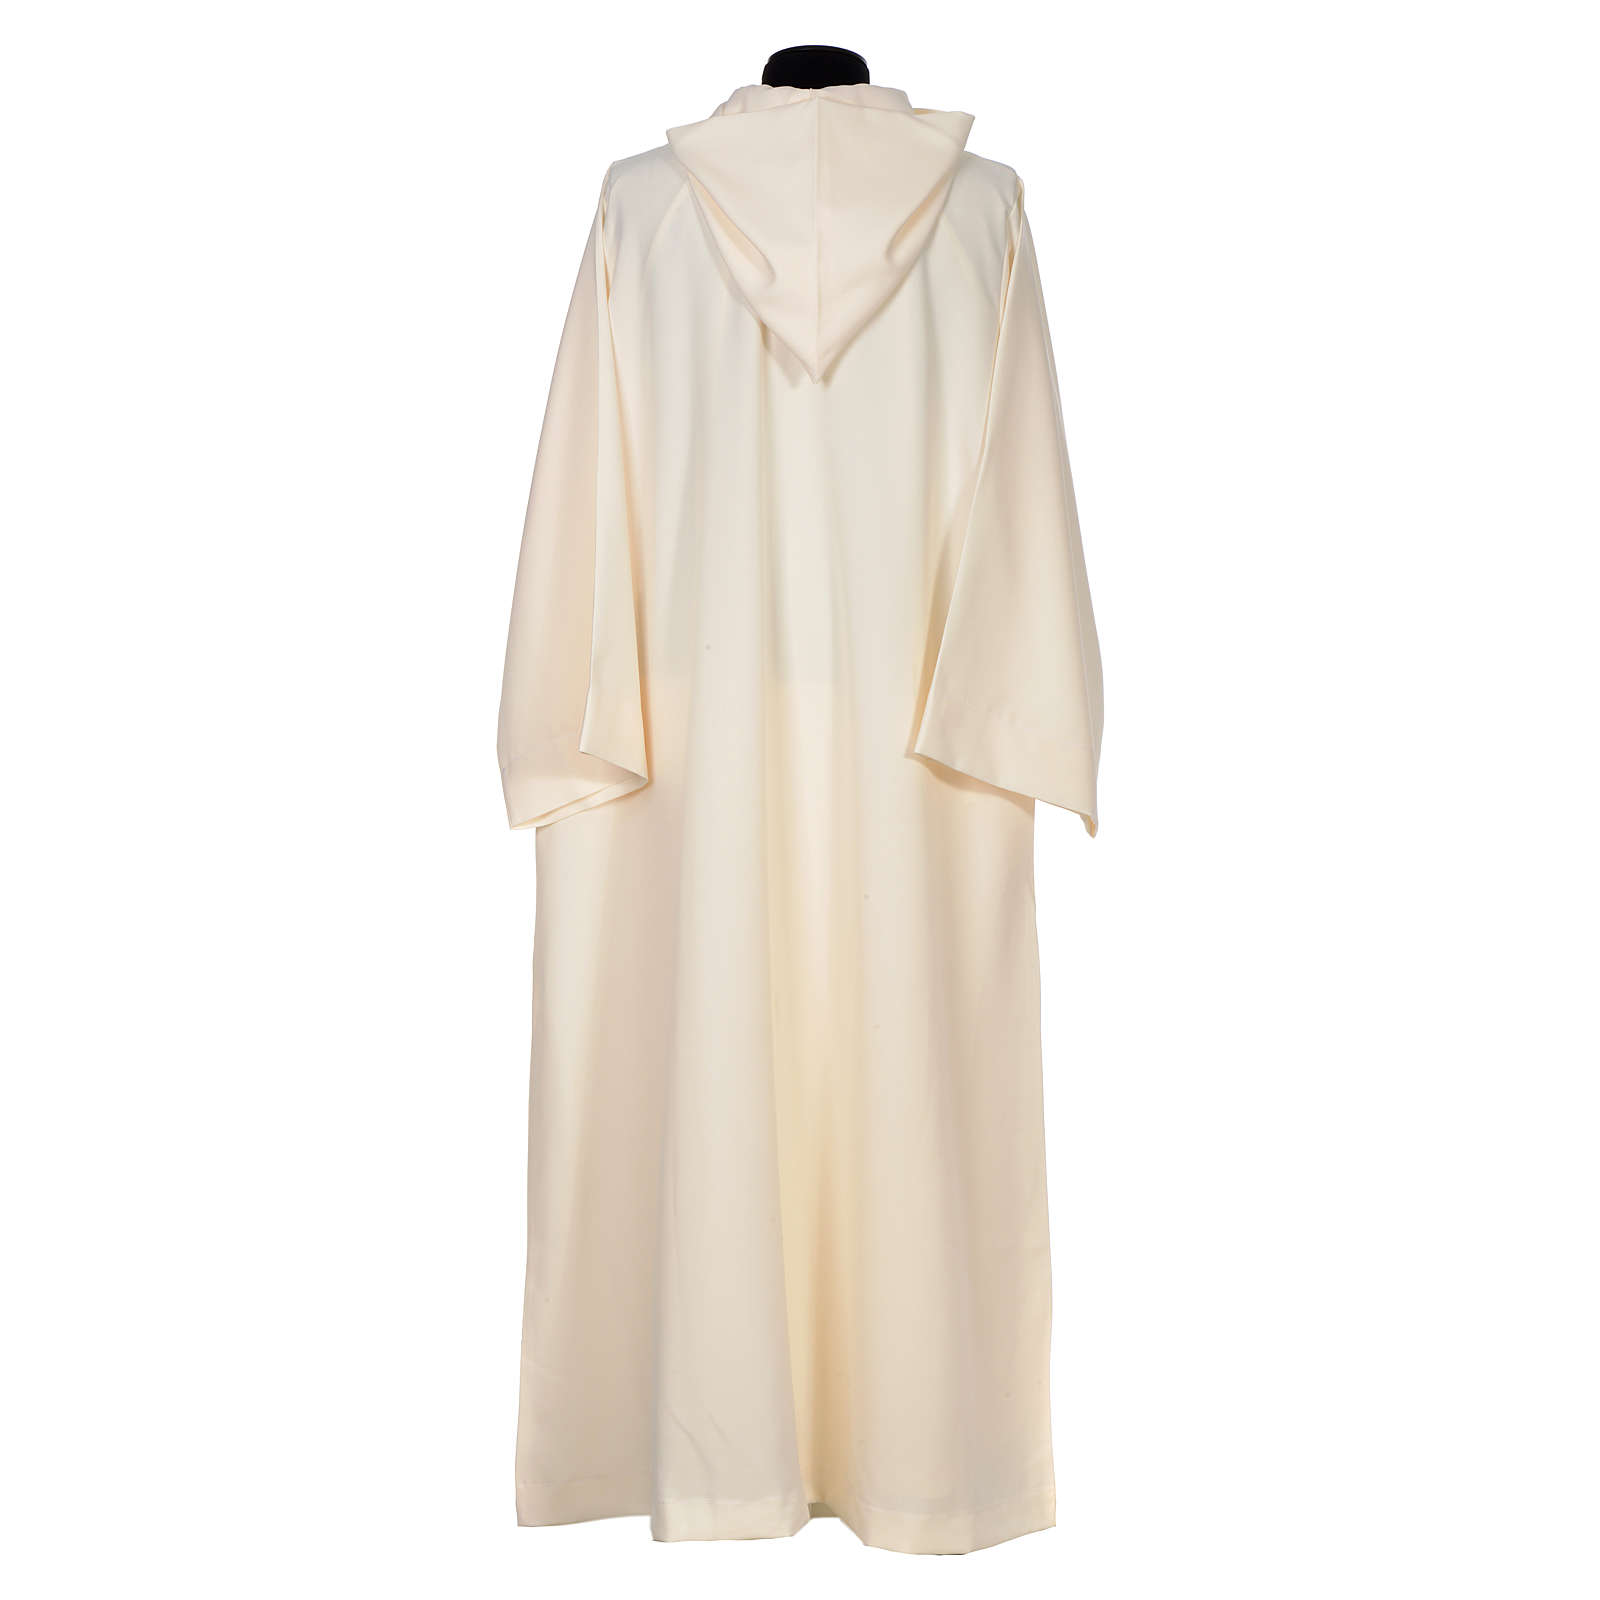 Surplice in polyester, flared with large hood 4